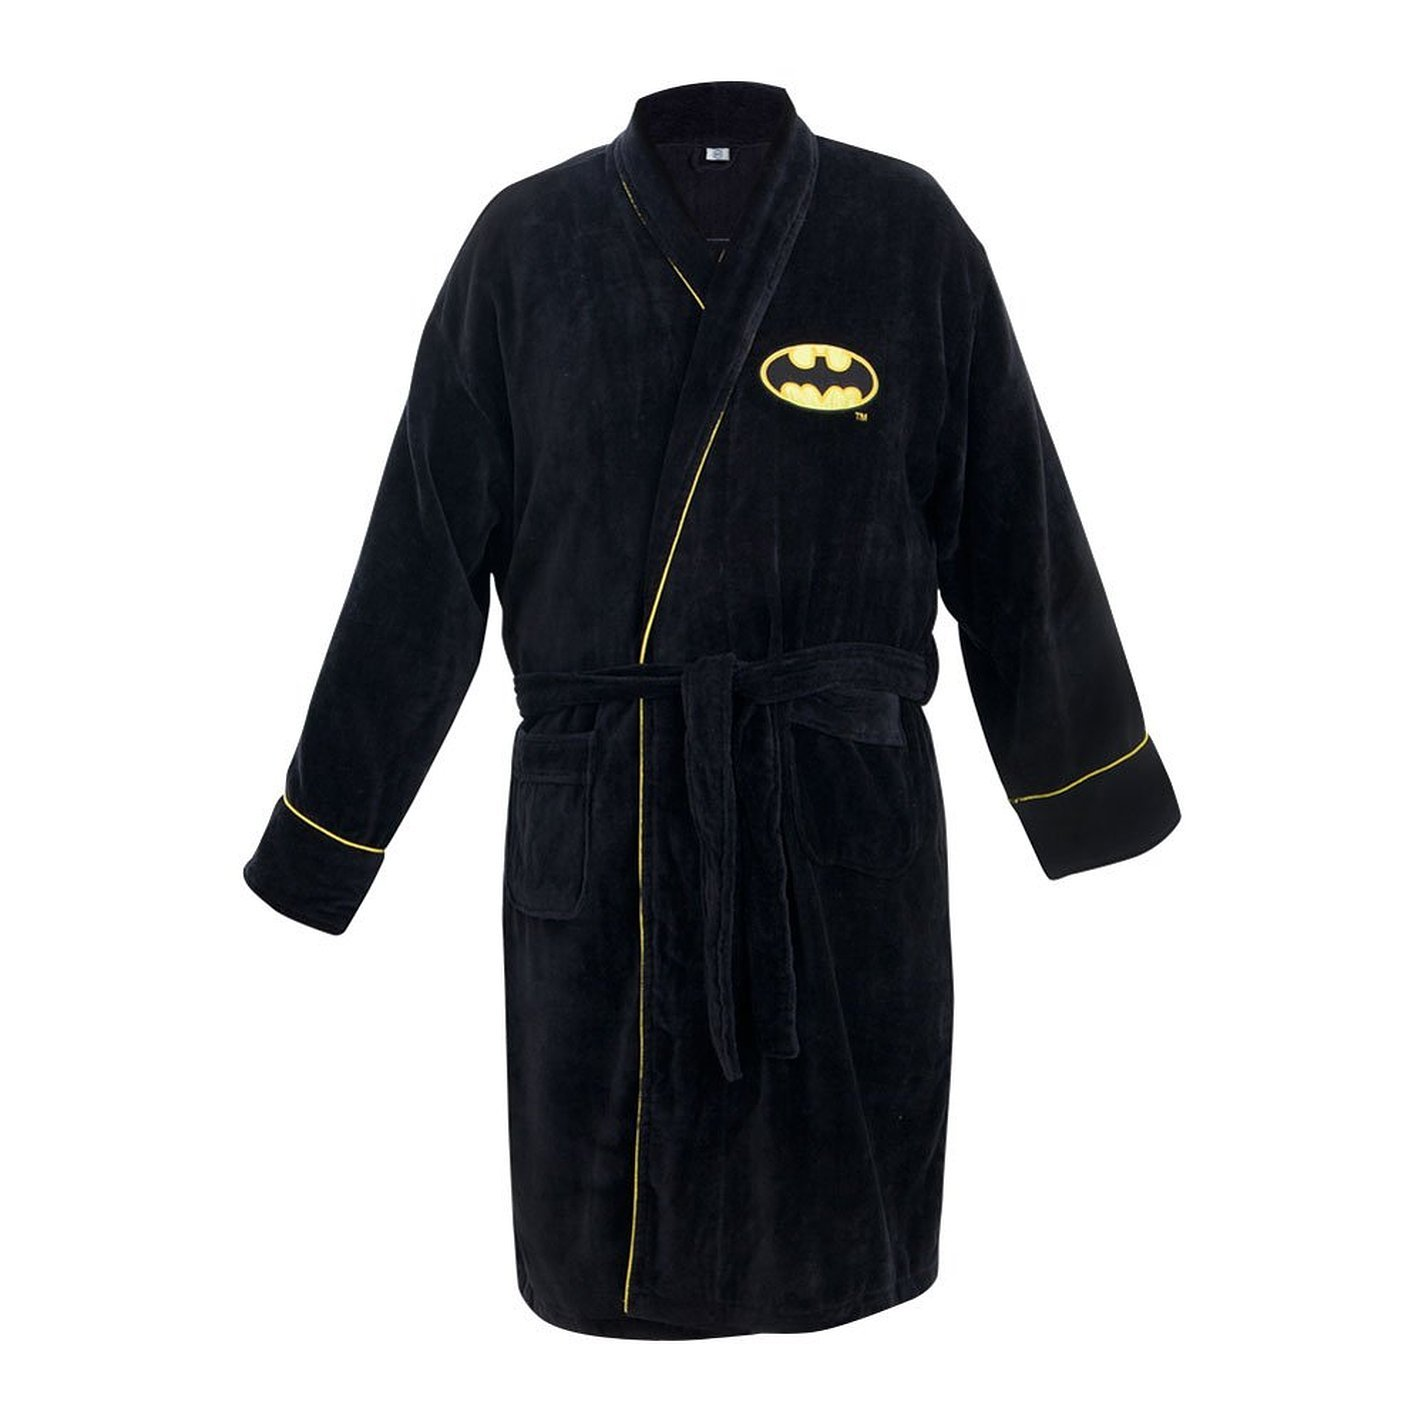 Amazon.com: Batman Adult Fleece Bath Robe, Black, One Size: Clothing